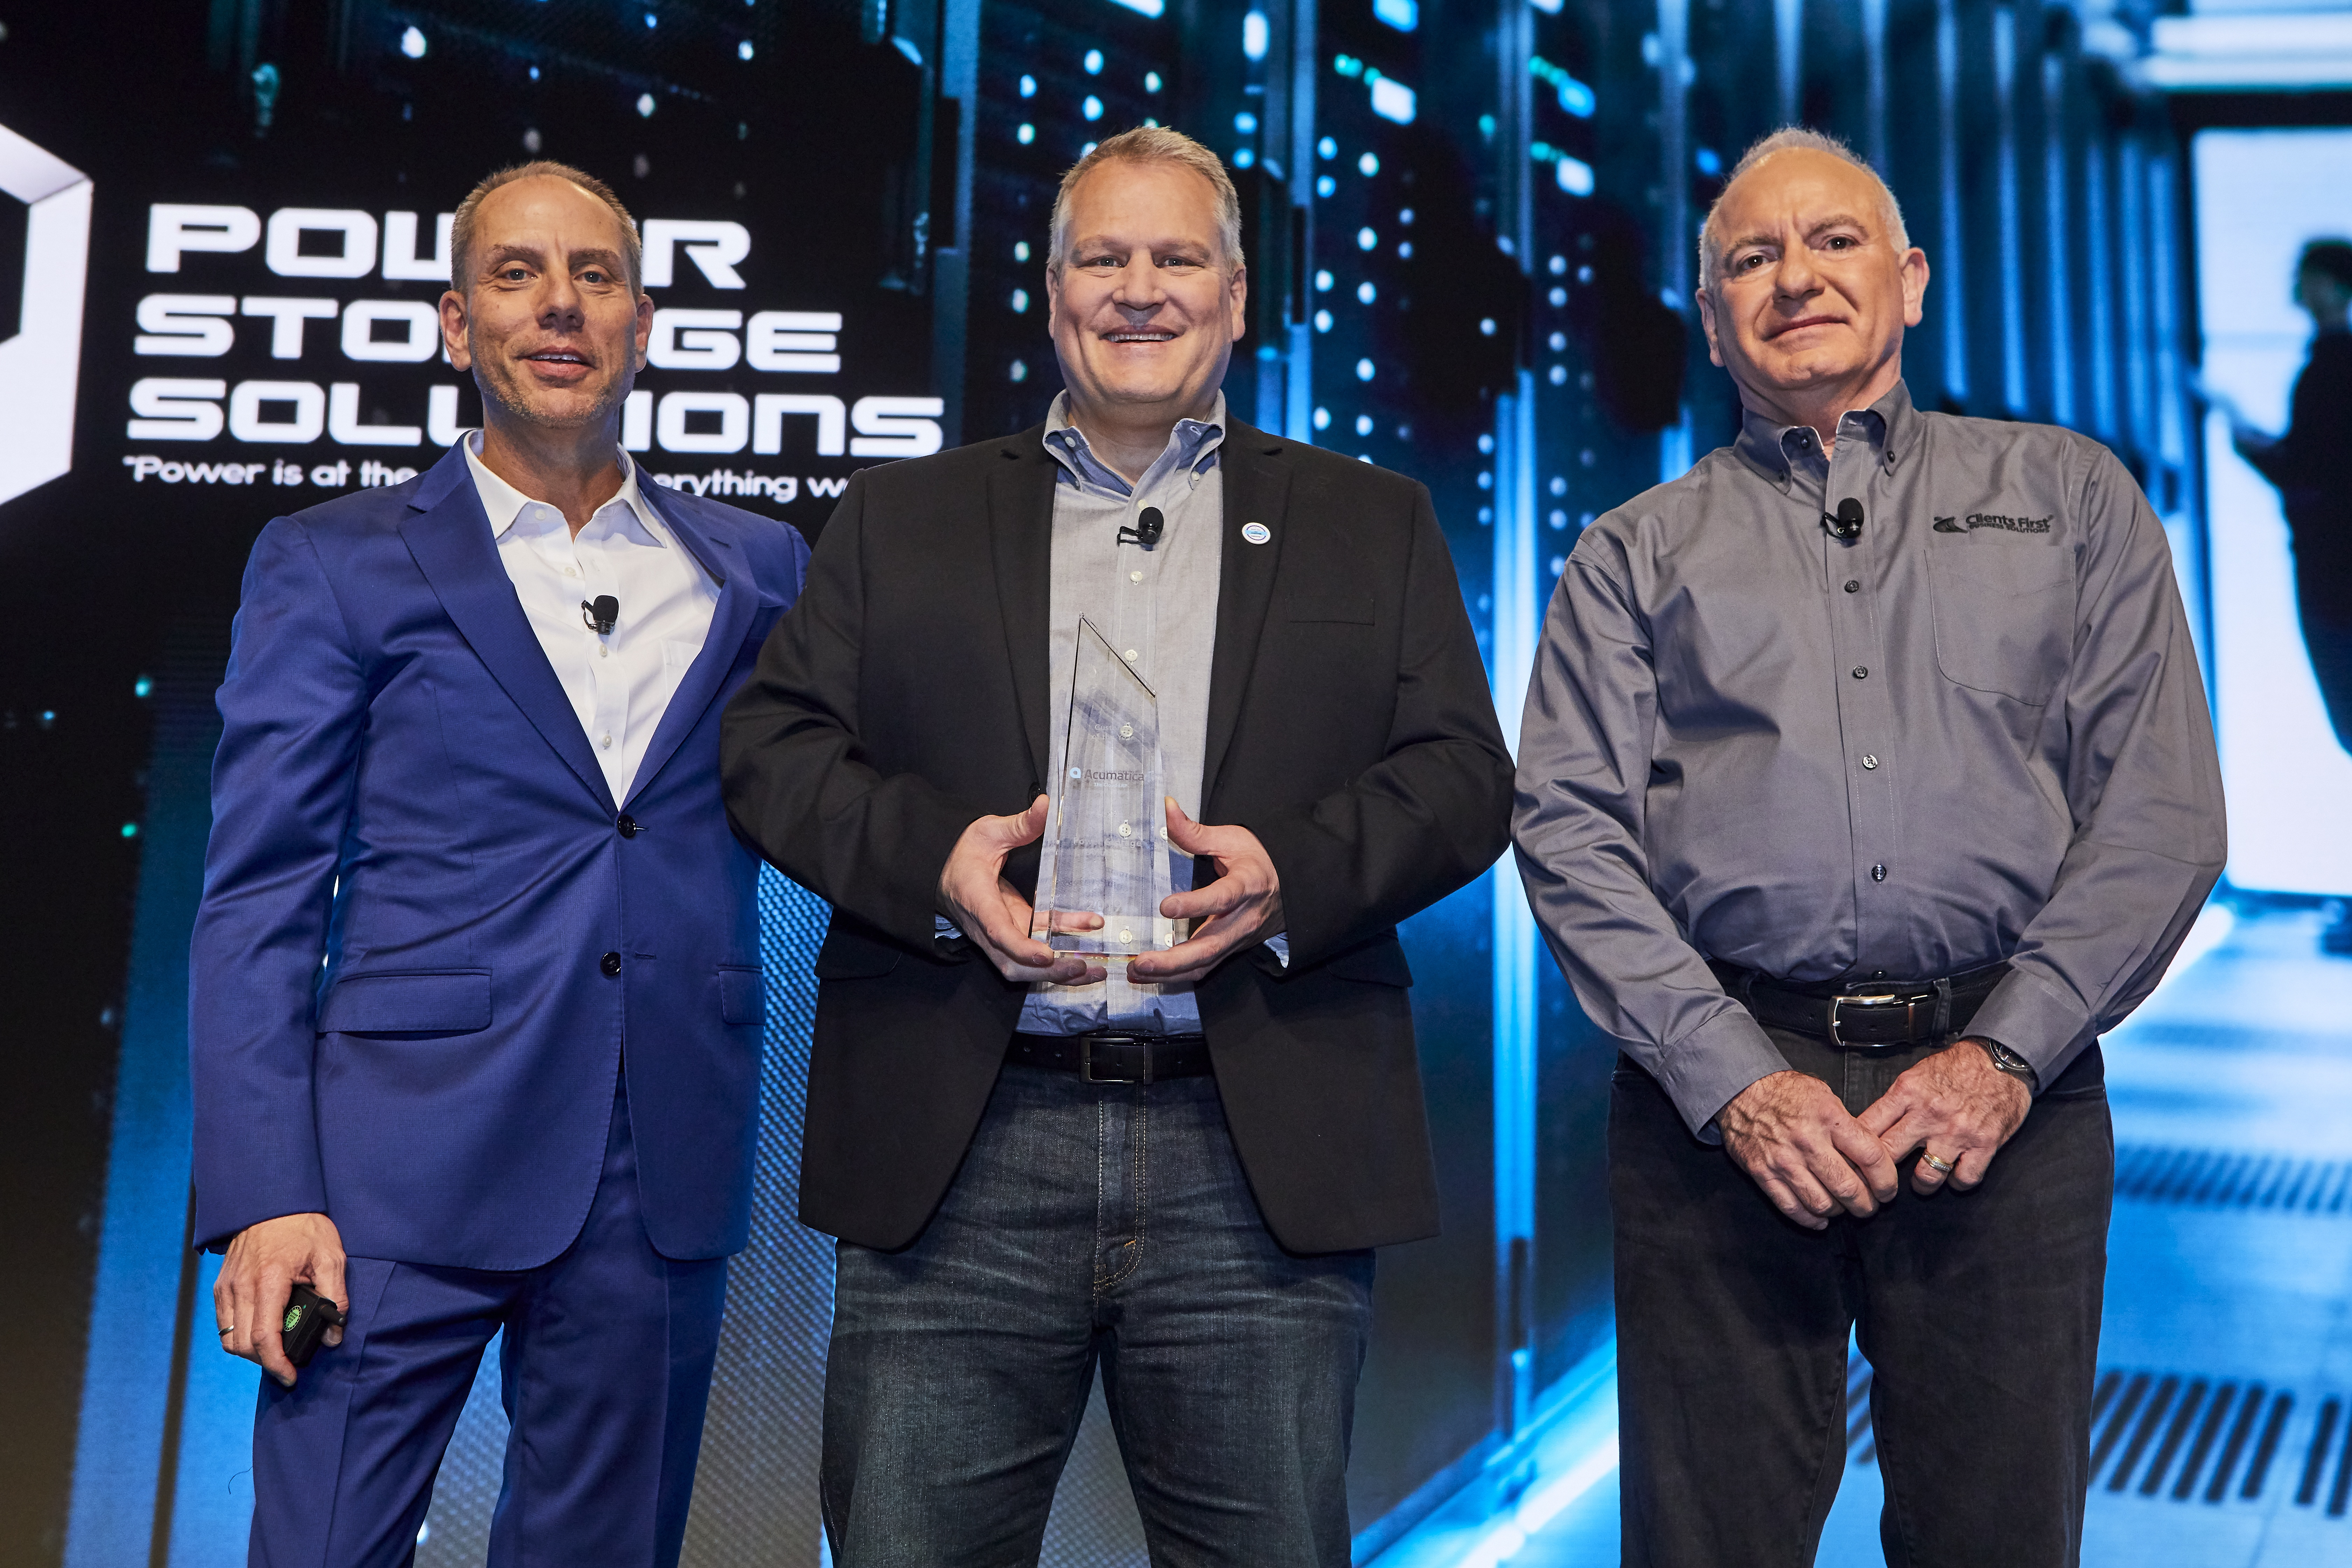 CEO Jon Roskill and Power Storage Solutions, Acumatica's Customer of the Year